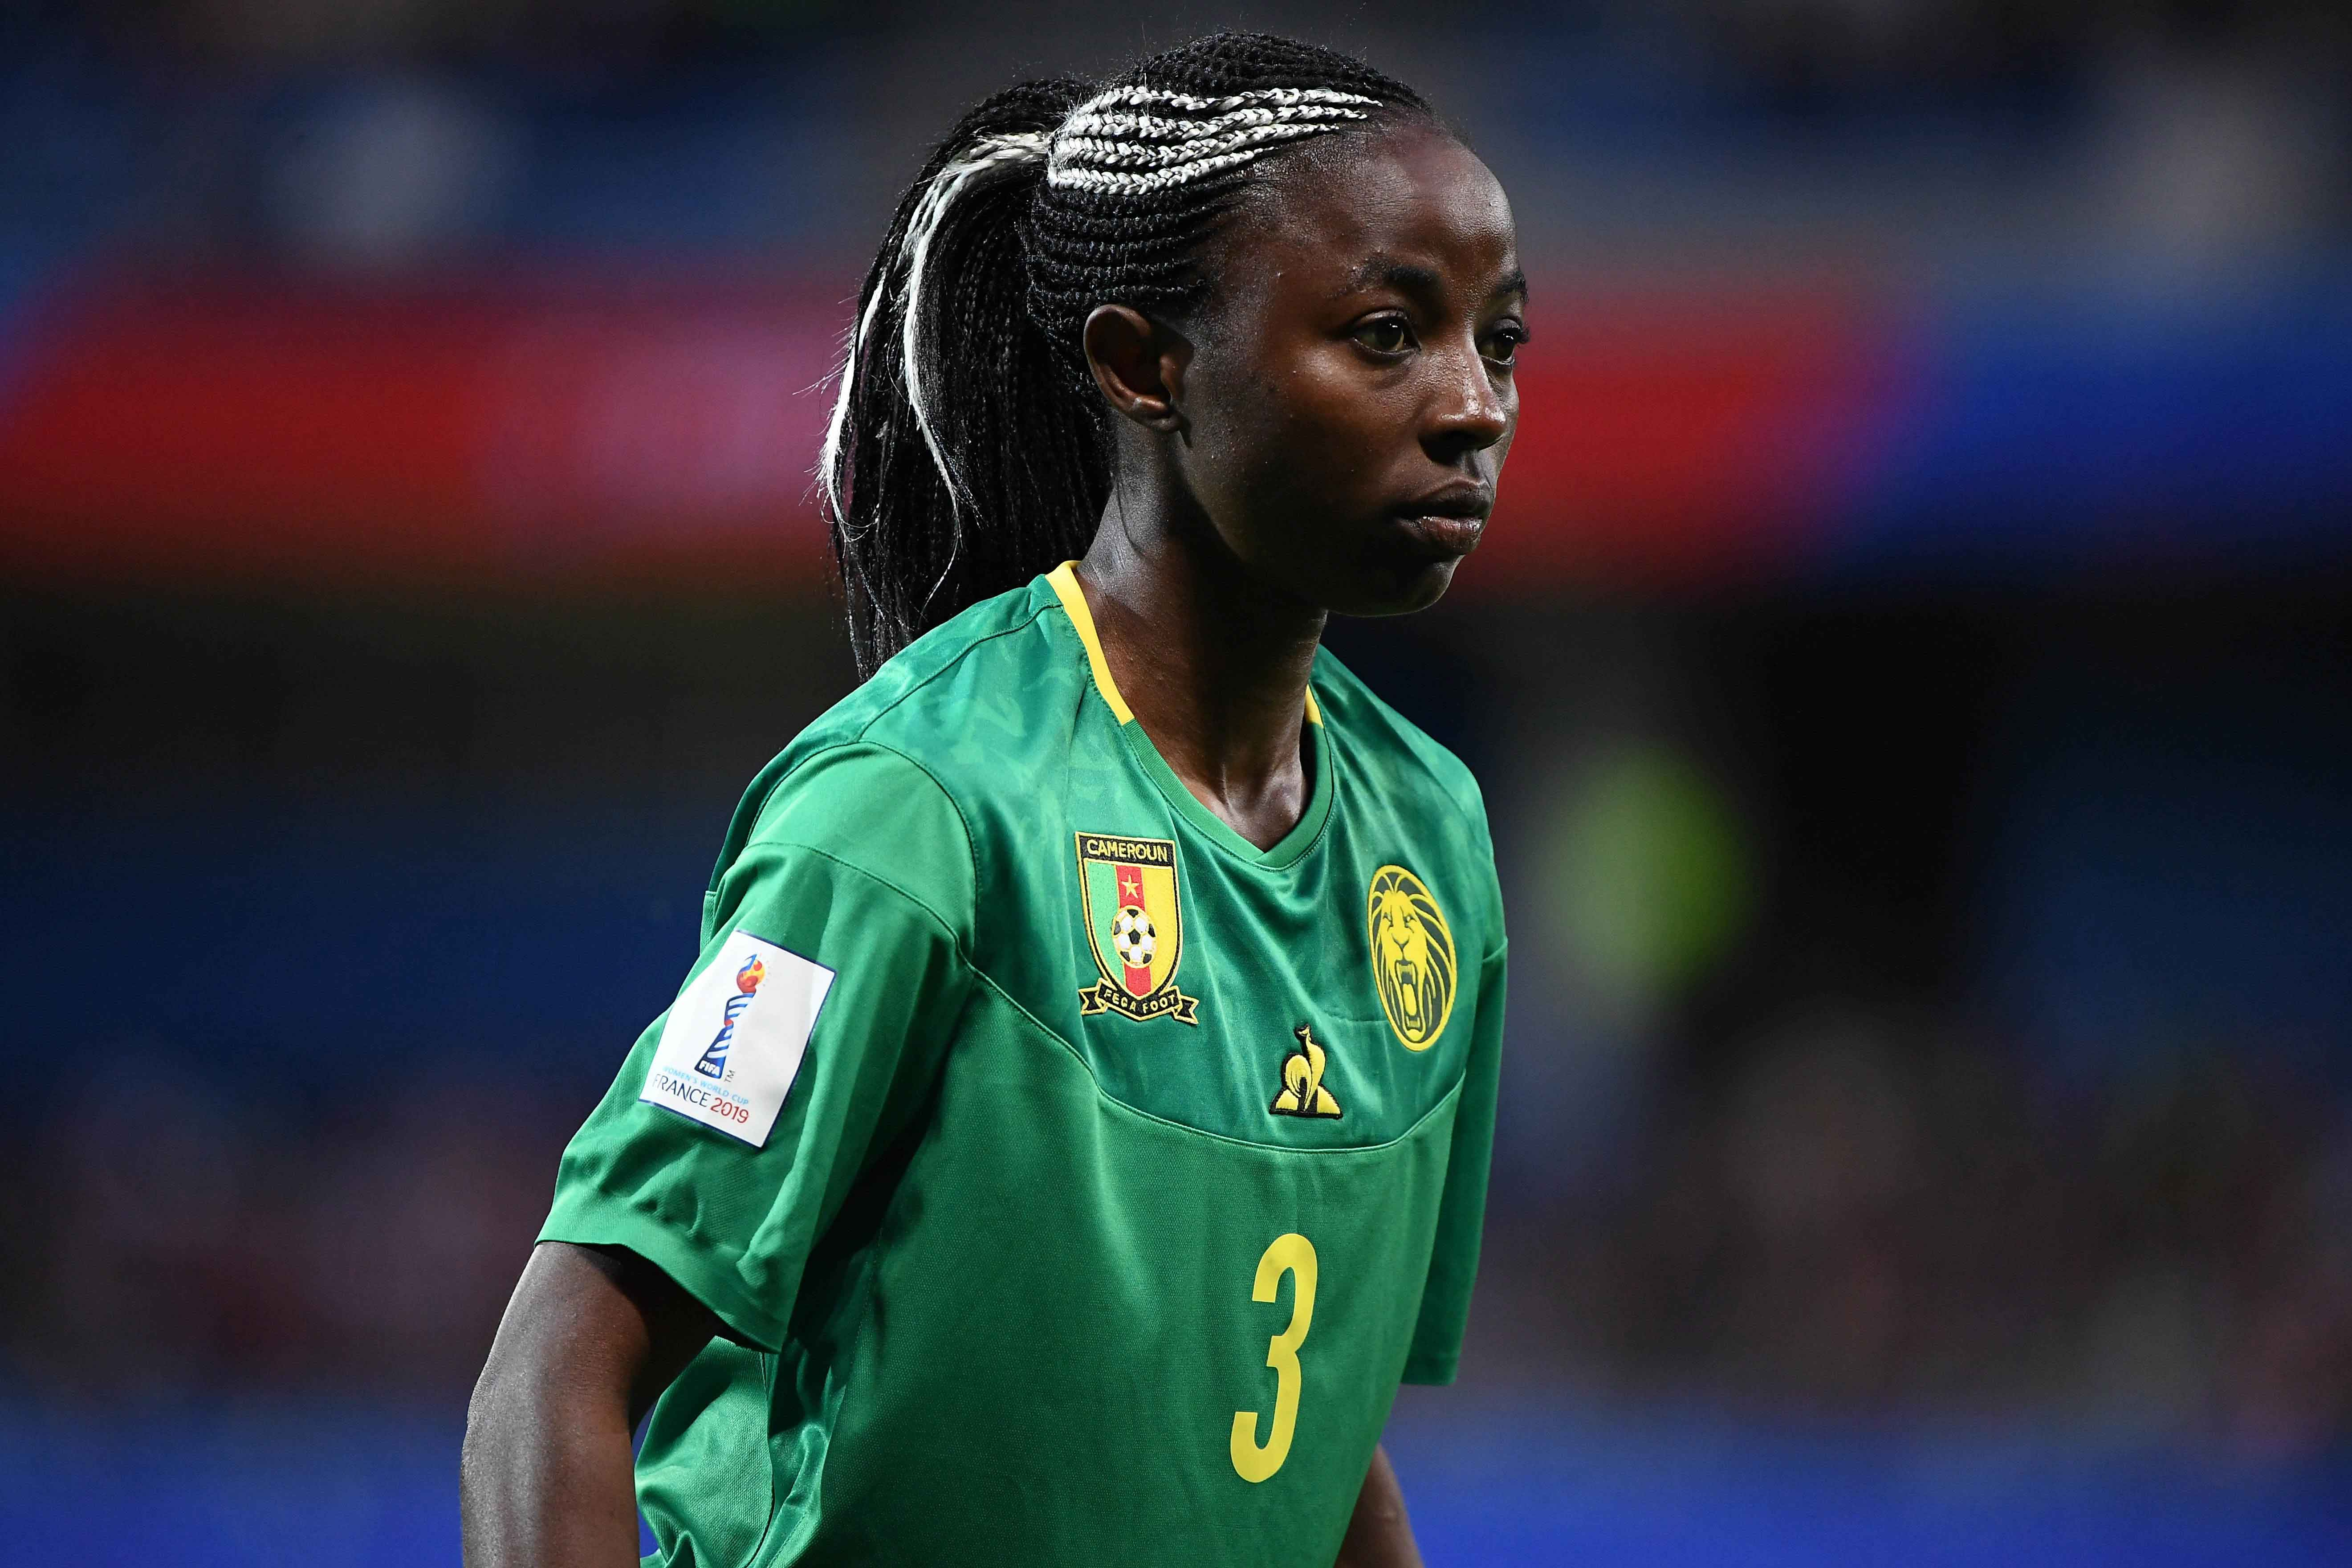 Ajara Nchout's goal put Cameroon into Olympic qualifiying final